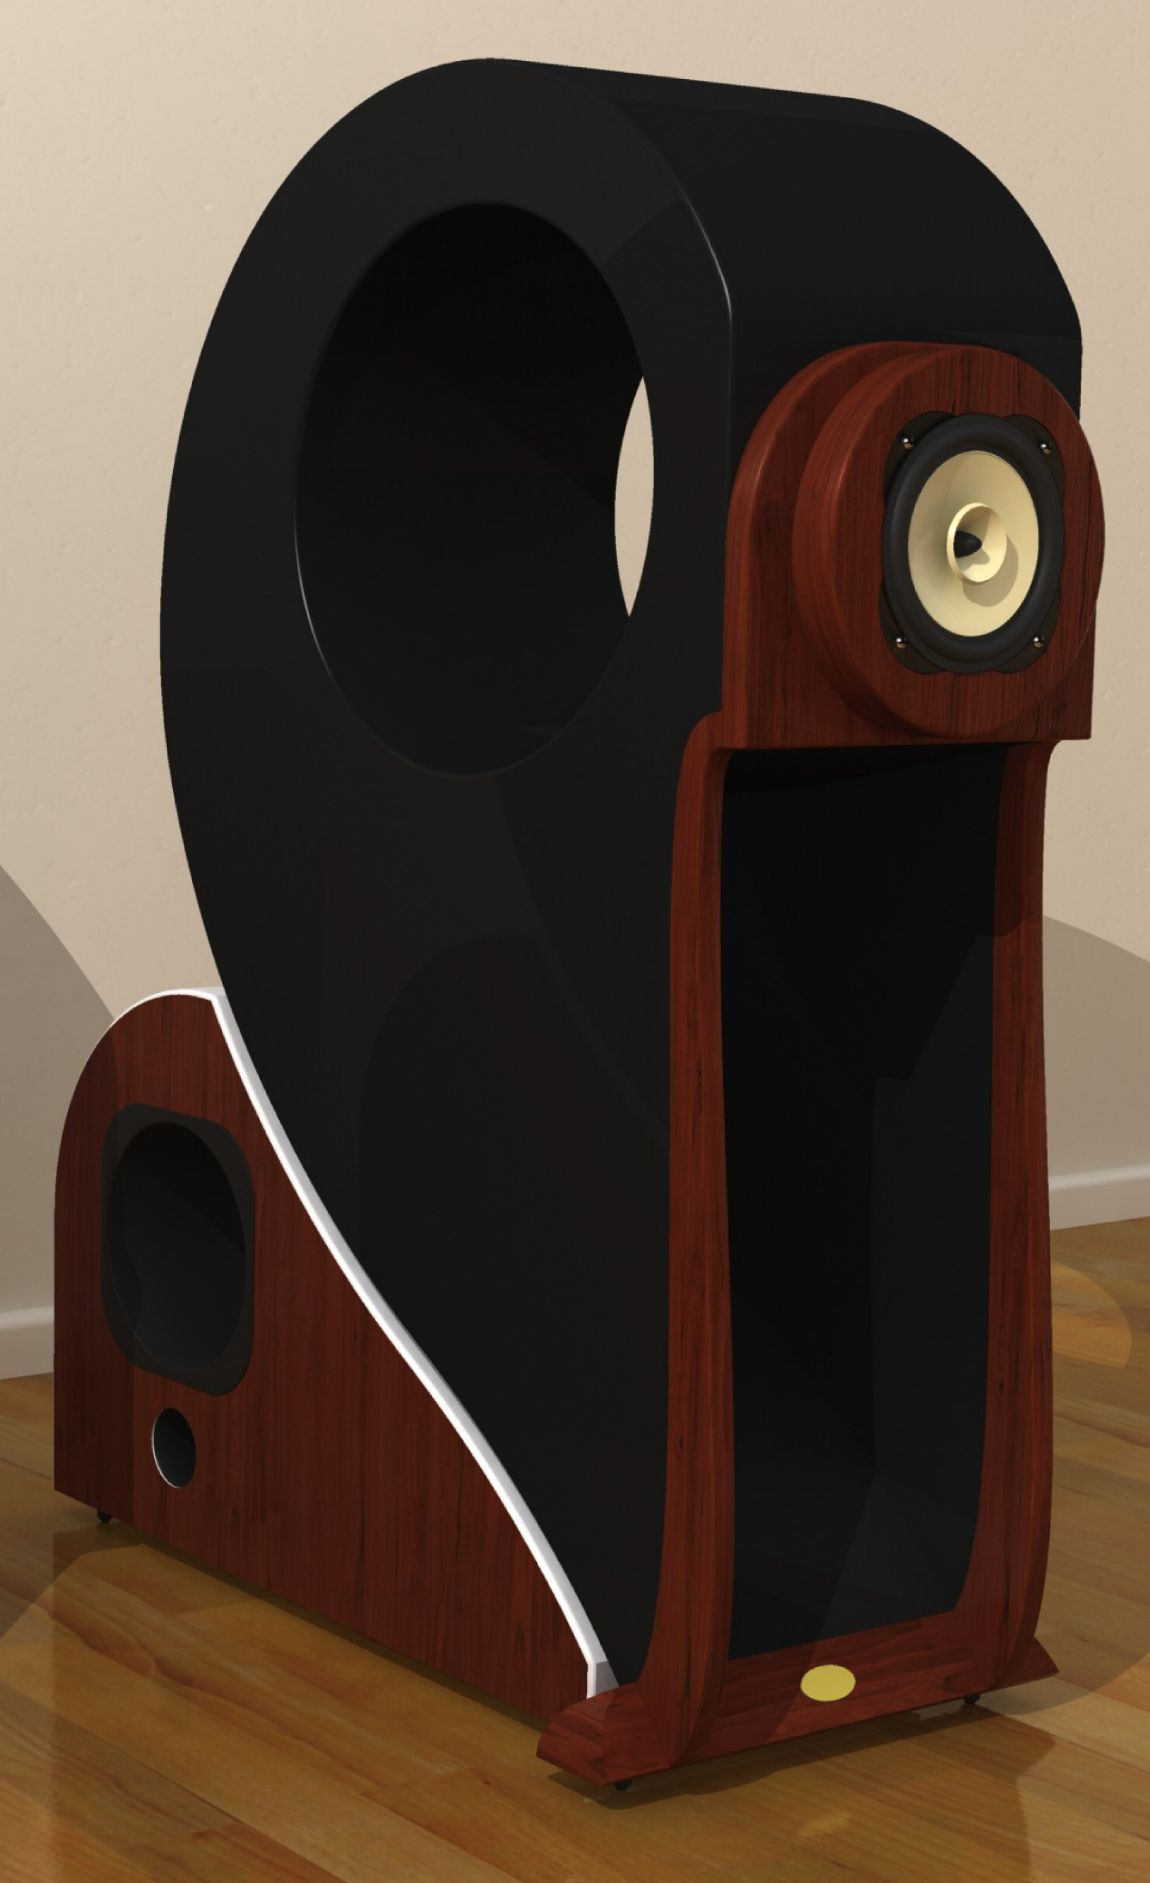 Speaker clipart horn speaker. Creation audio carfrae little